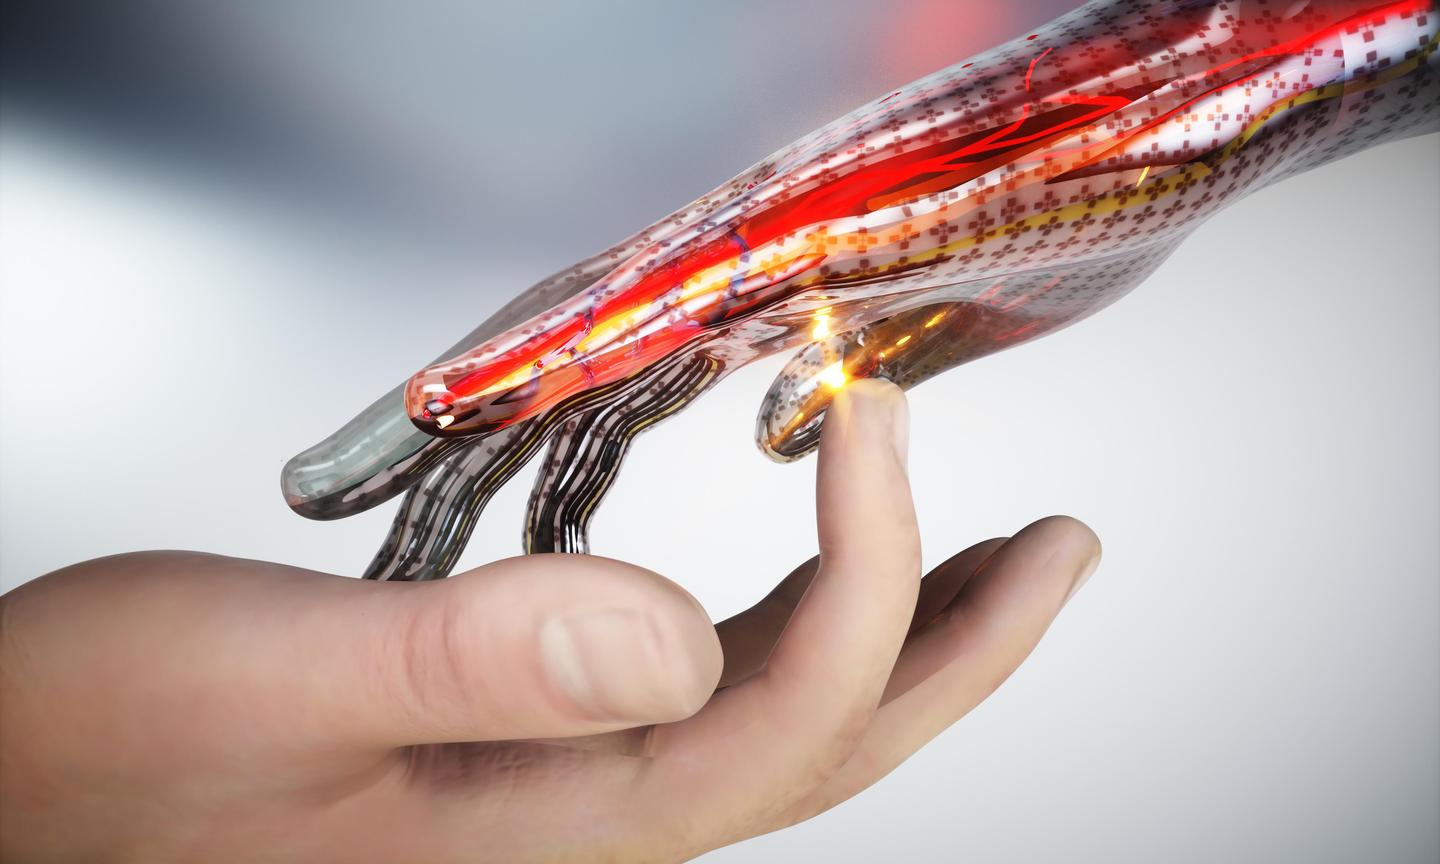 A conceptual image of a robotic skin that can sense pain, heat and pressure